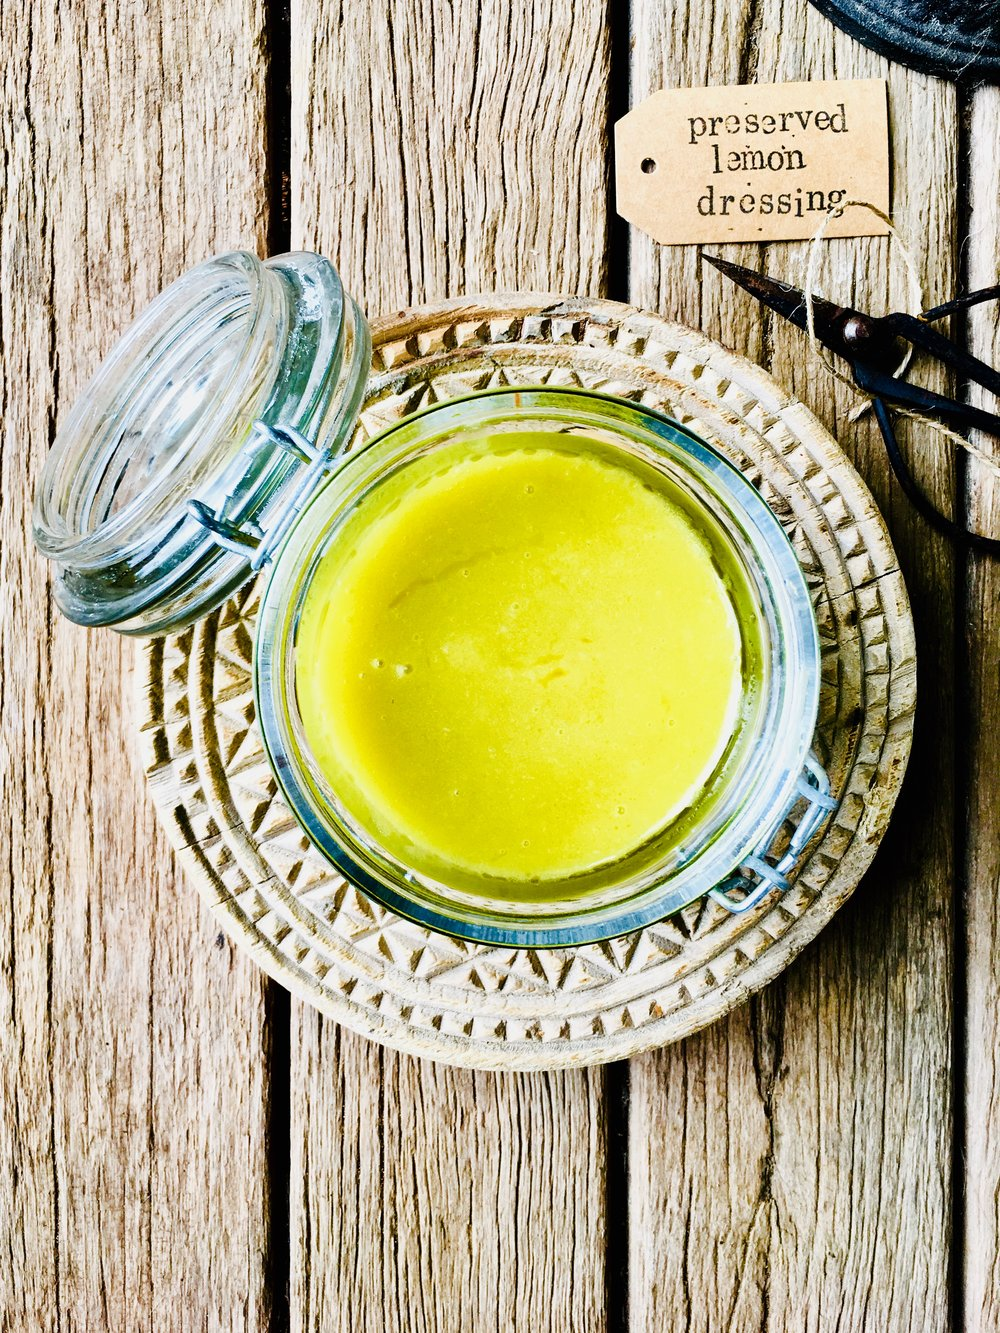 Preserved lemon dressing